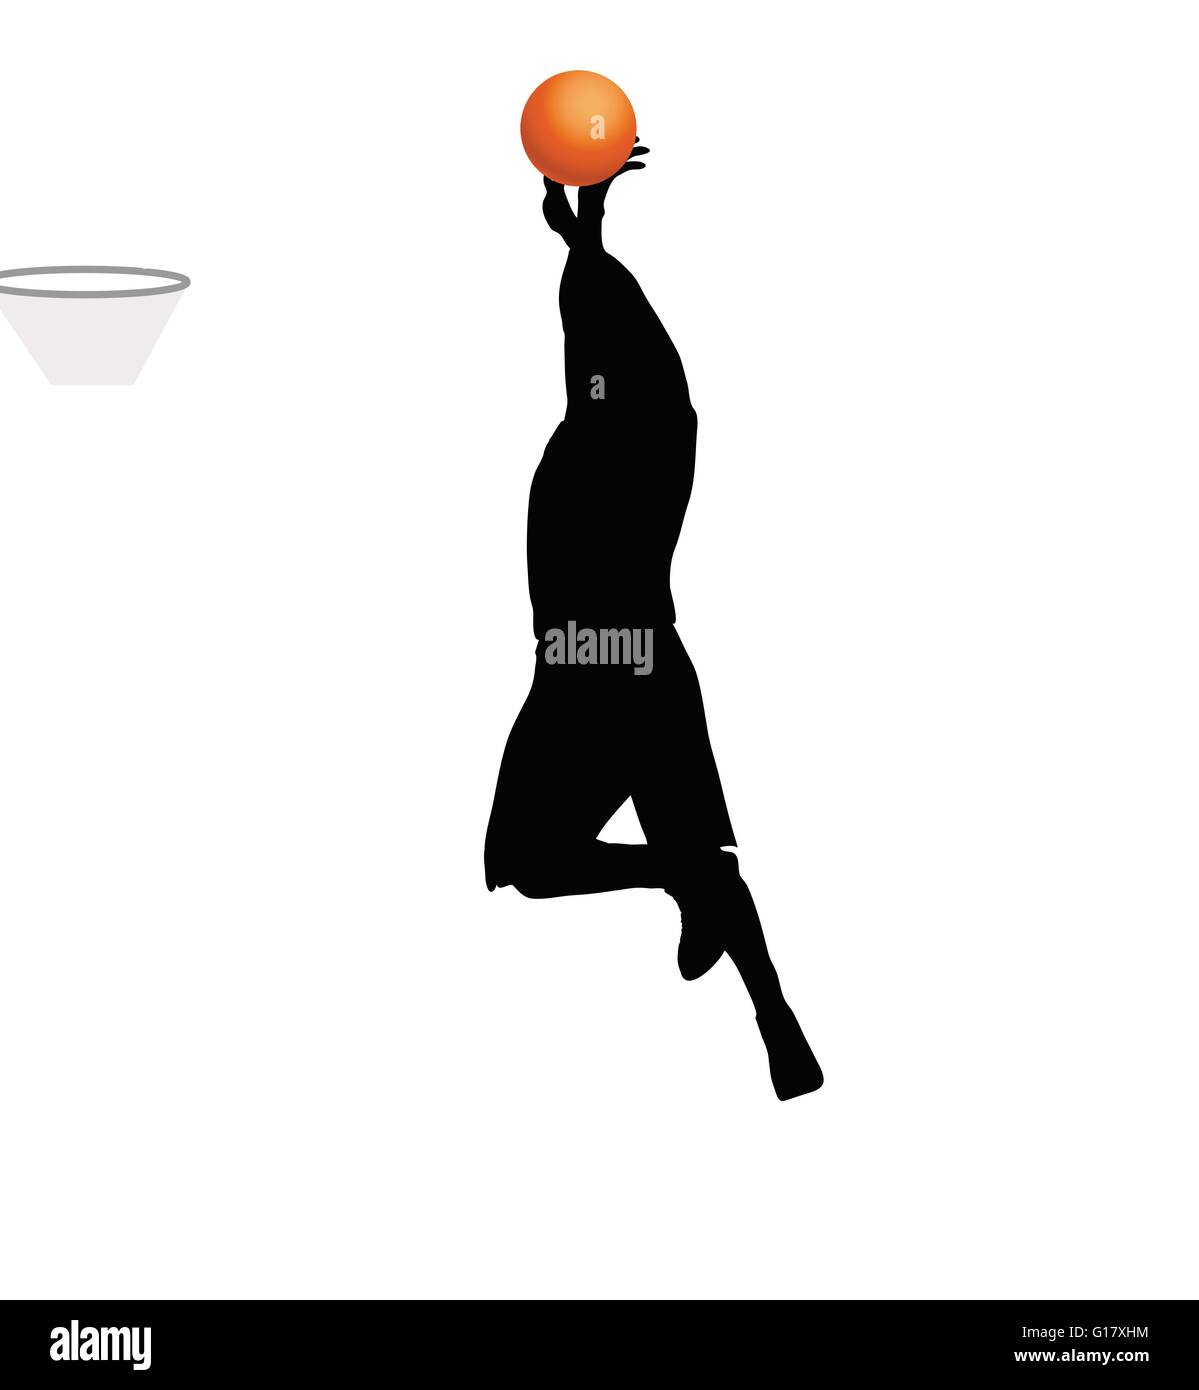 95c820683 Vector Image - basketball player man silhouette isolated on white background  - Stock Image